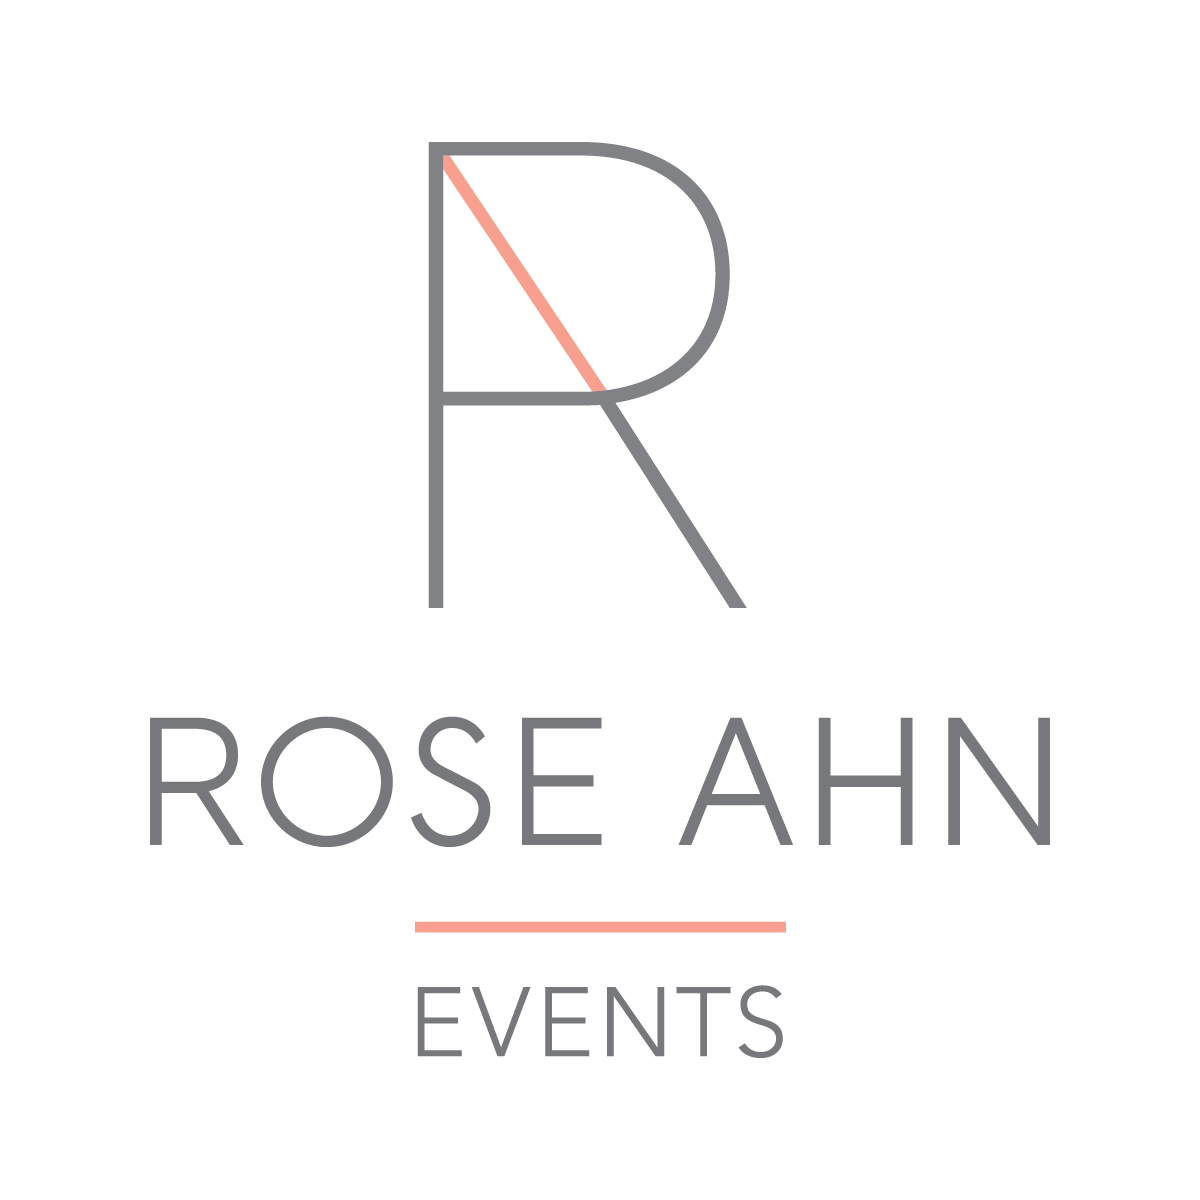 Rose Ahn Events